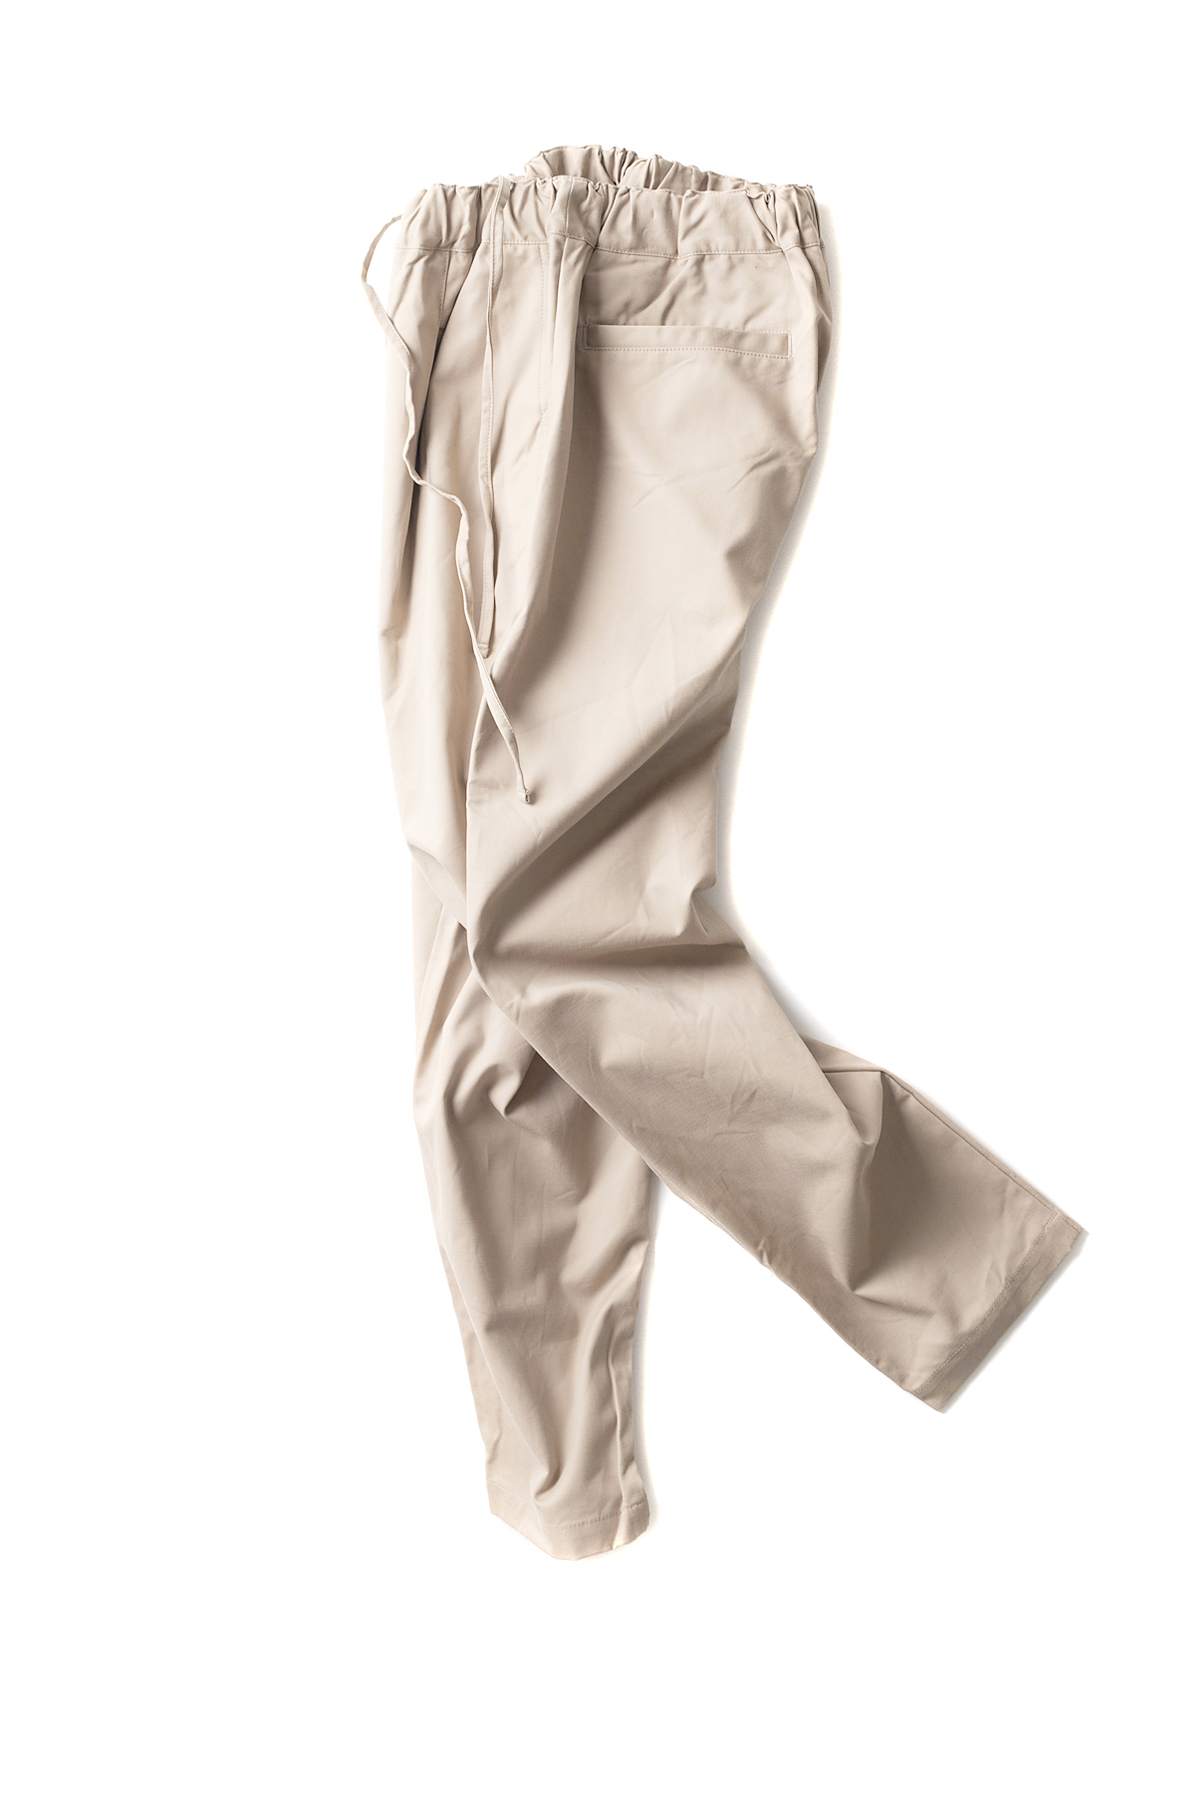 RINEN : One Tuck Easy Pants 43907 (Beige)